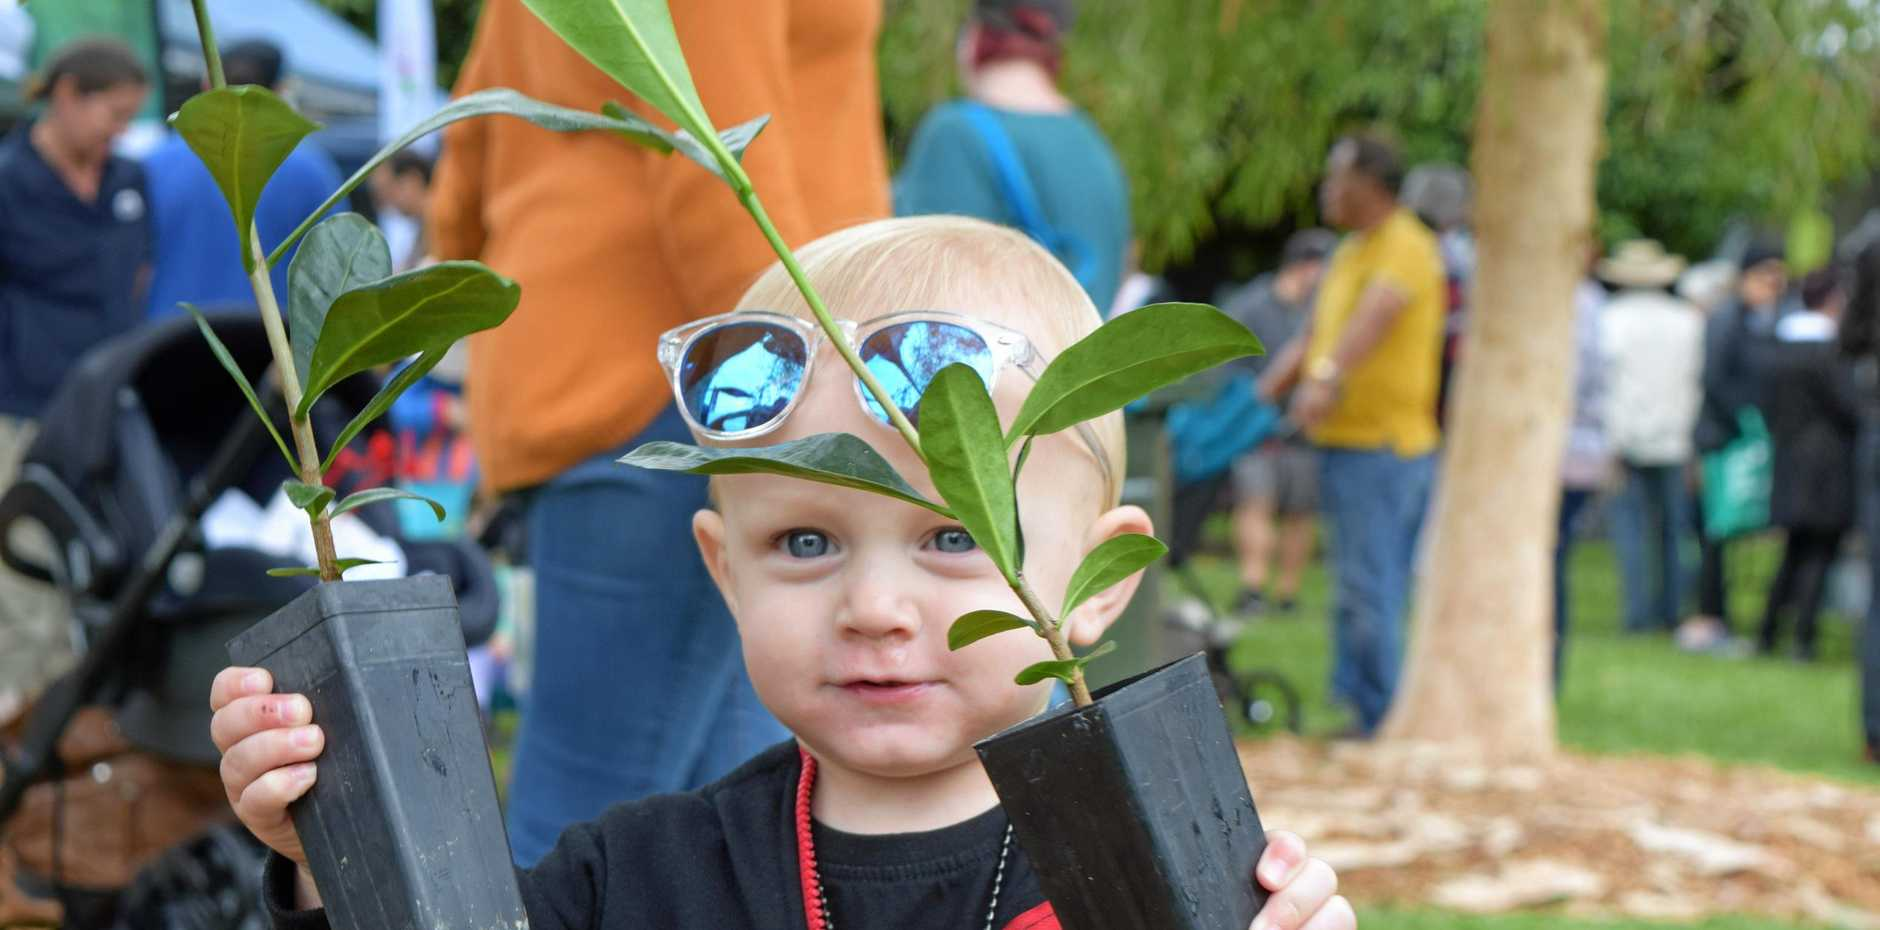 Zander Hobley (16 months old) happily carried around the free native plants his parents picked up at the Botanic Gardens Open Day.